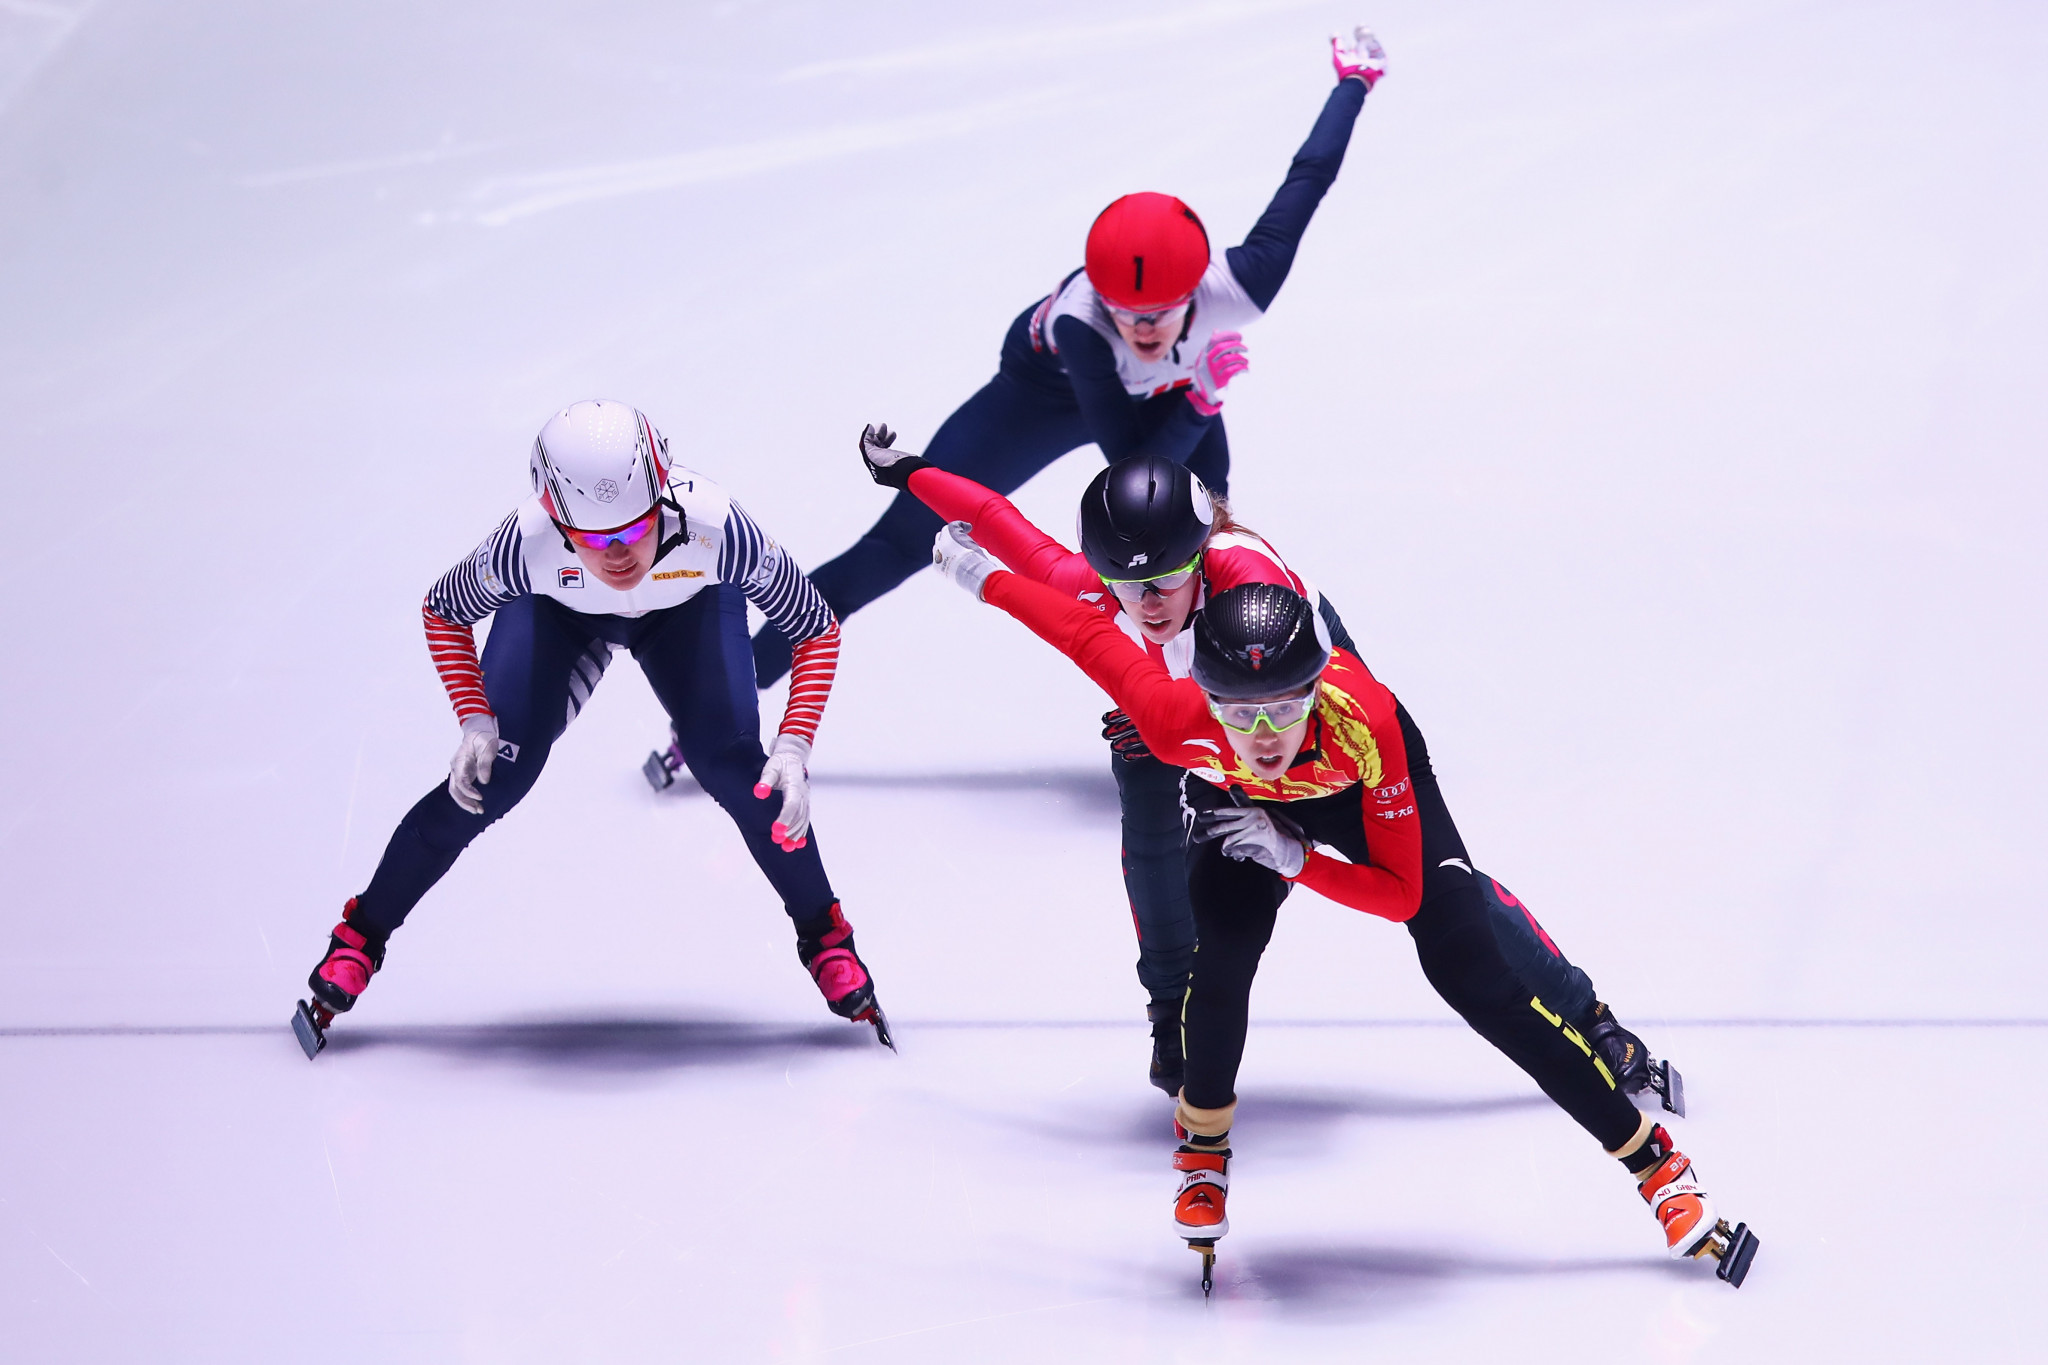 Olympic silver medallist disqualified in 1,000m at ISU Short Track World Cup